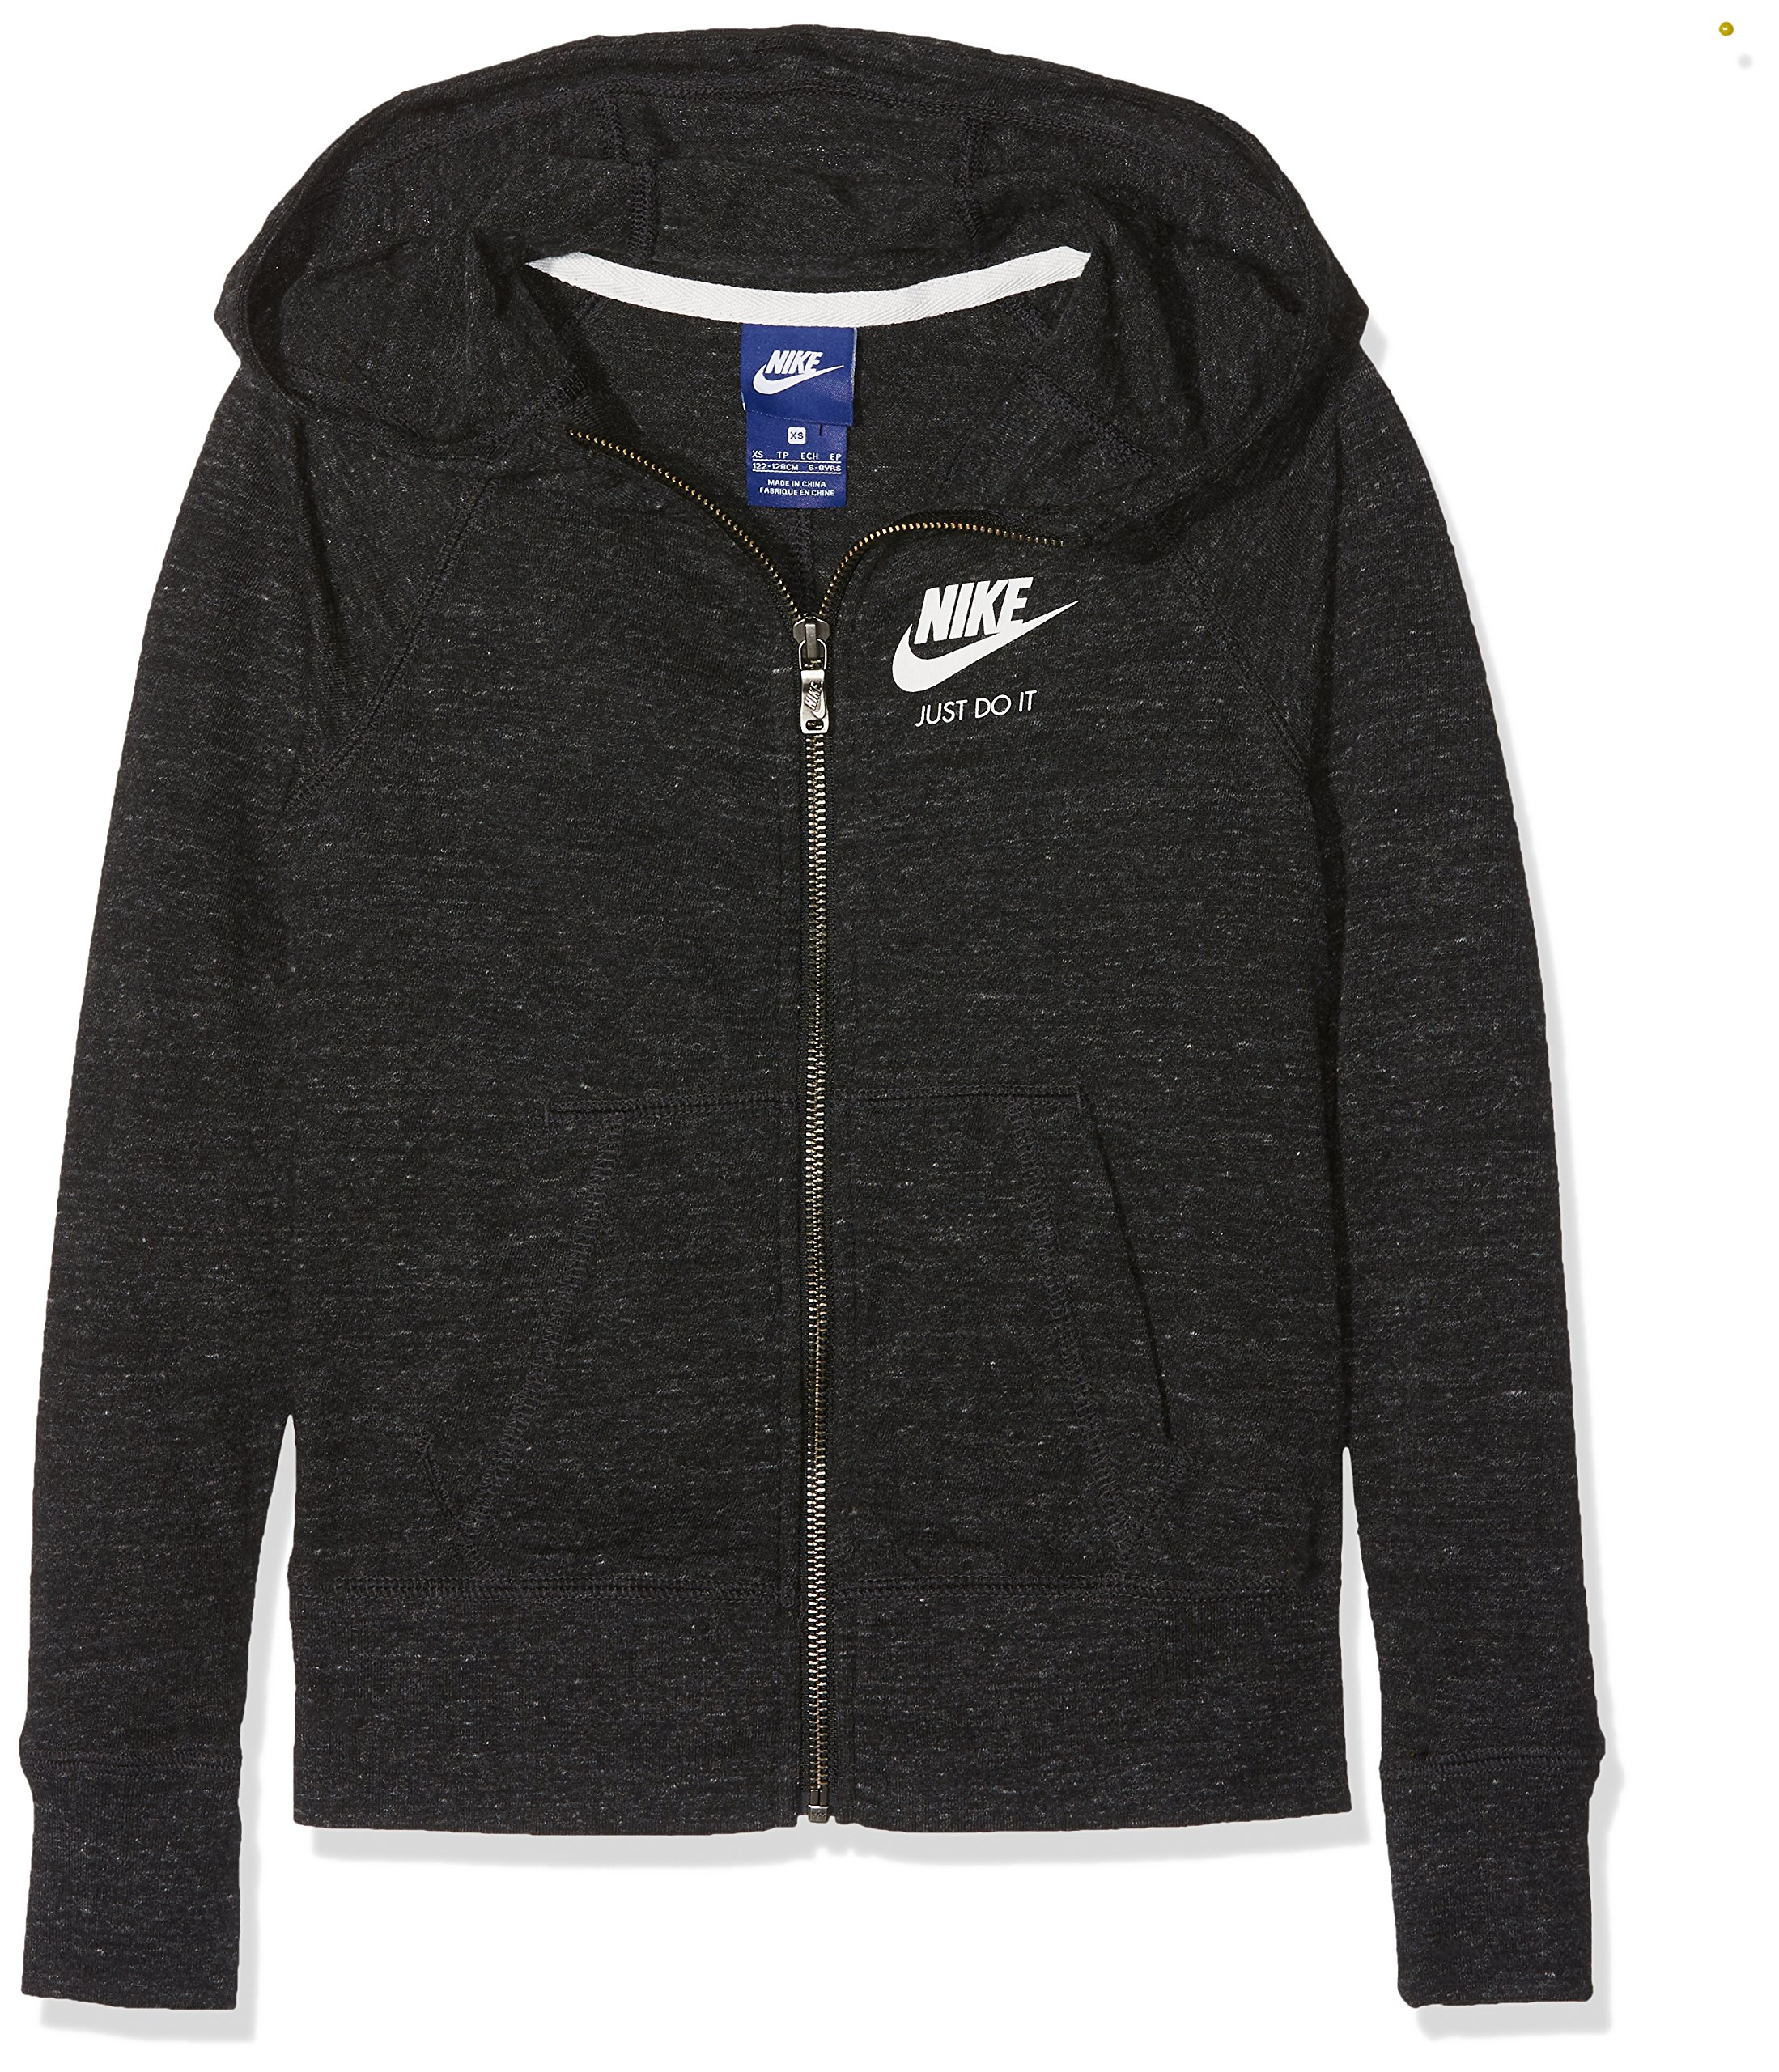 Nike Sportswear Vintage Older Kids' (Girls') Hoodie (Black, L)